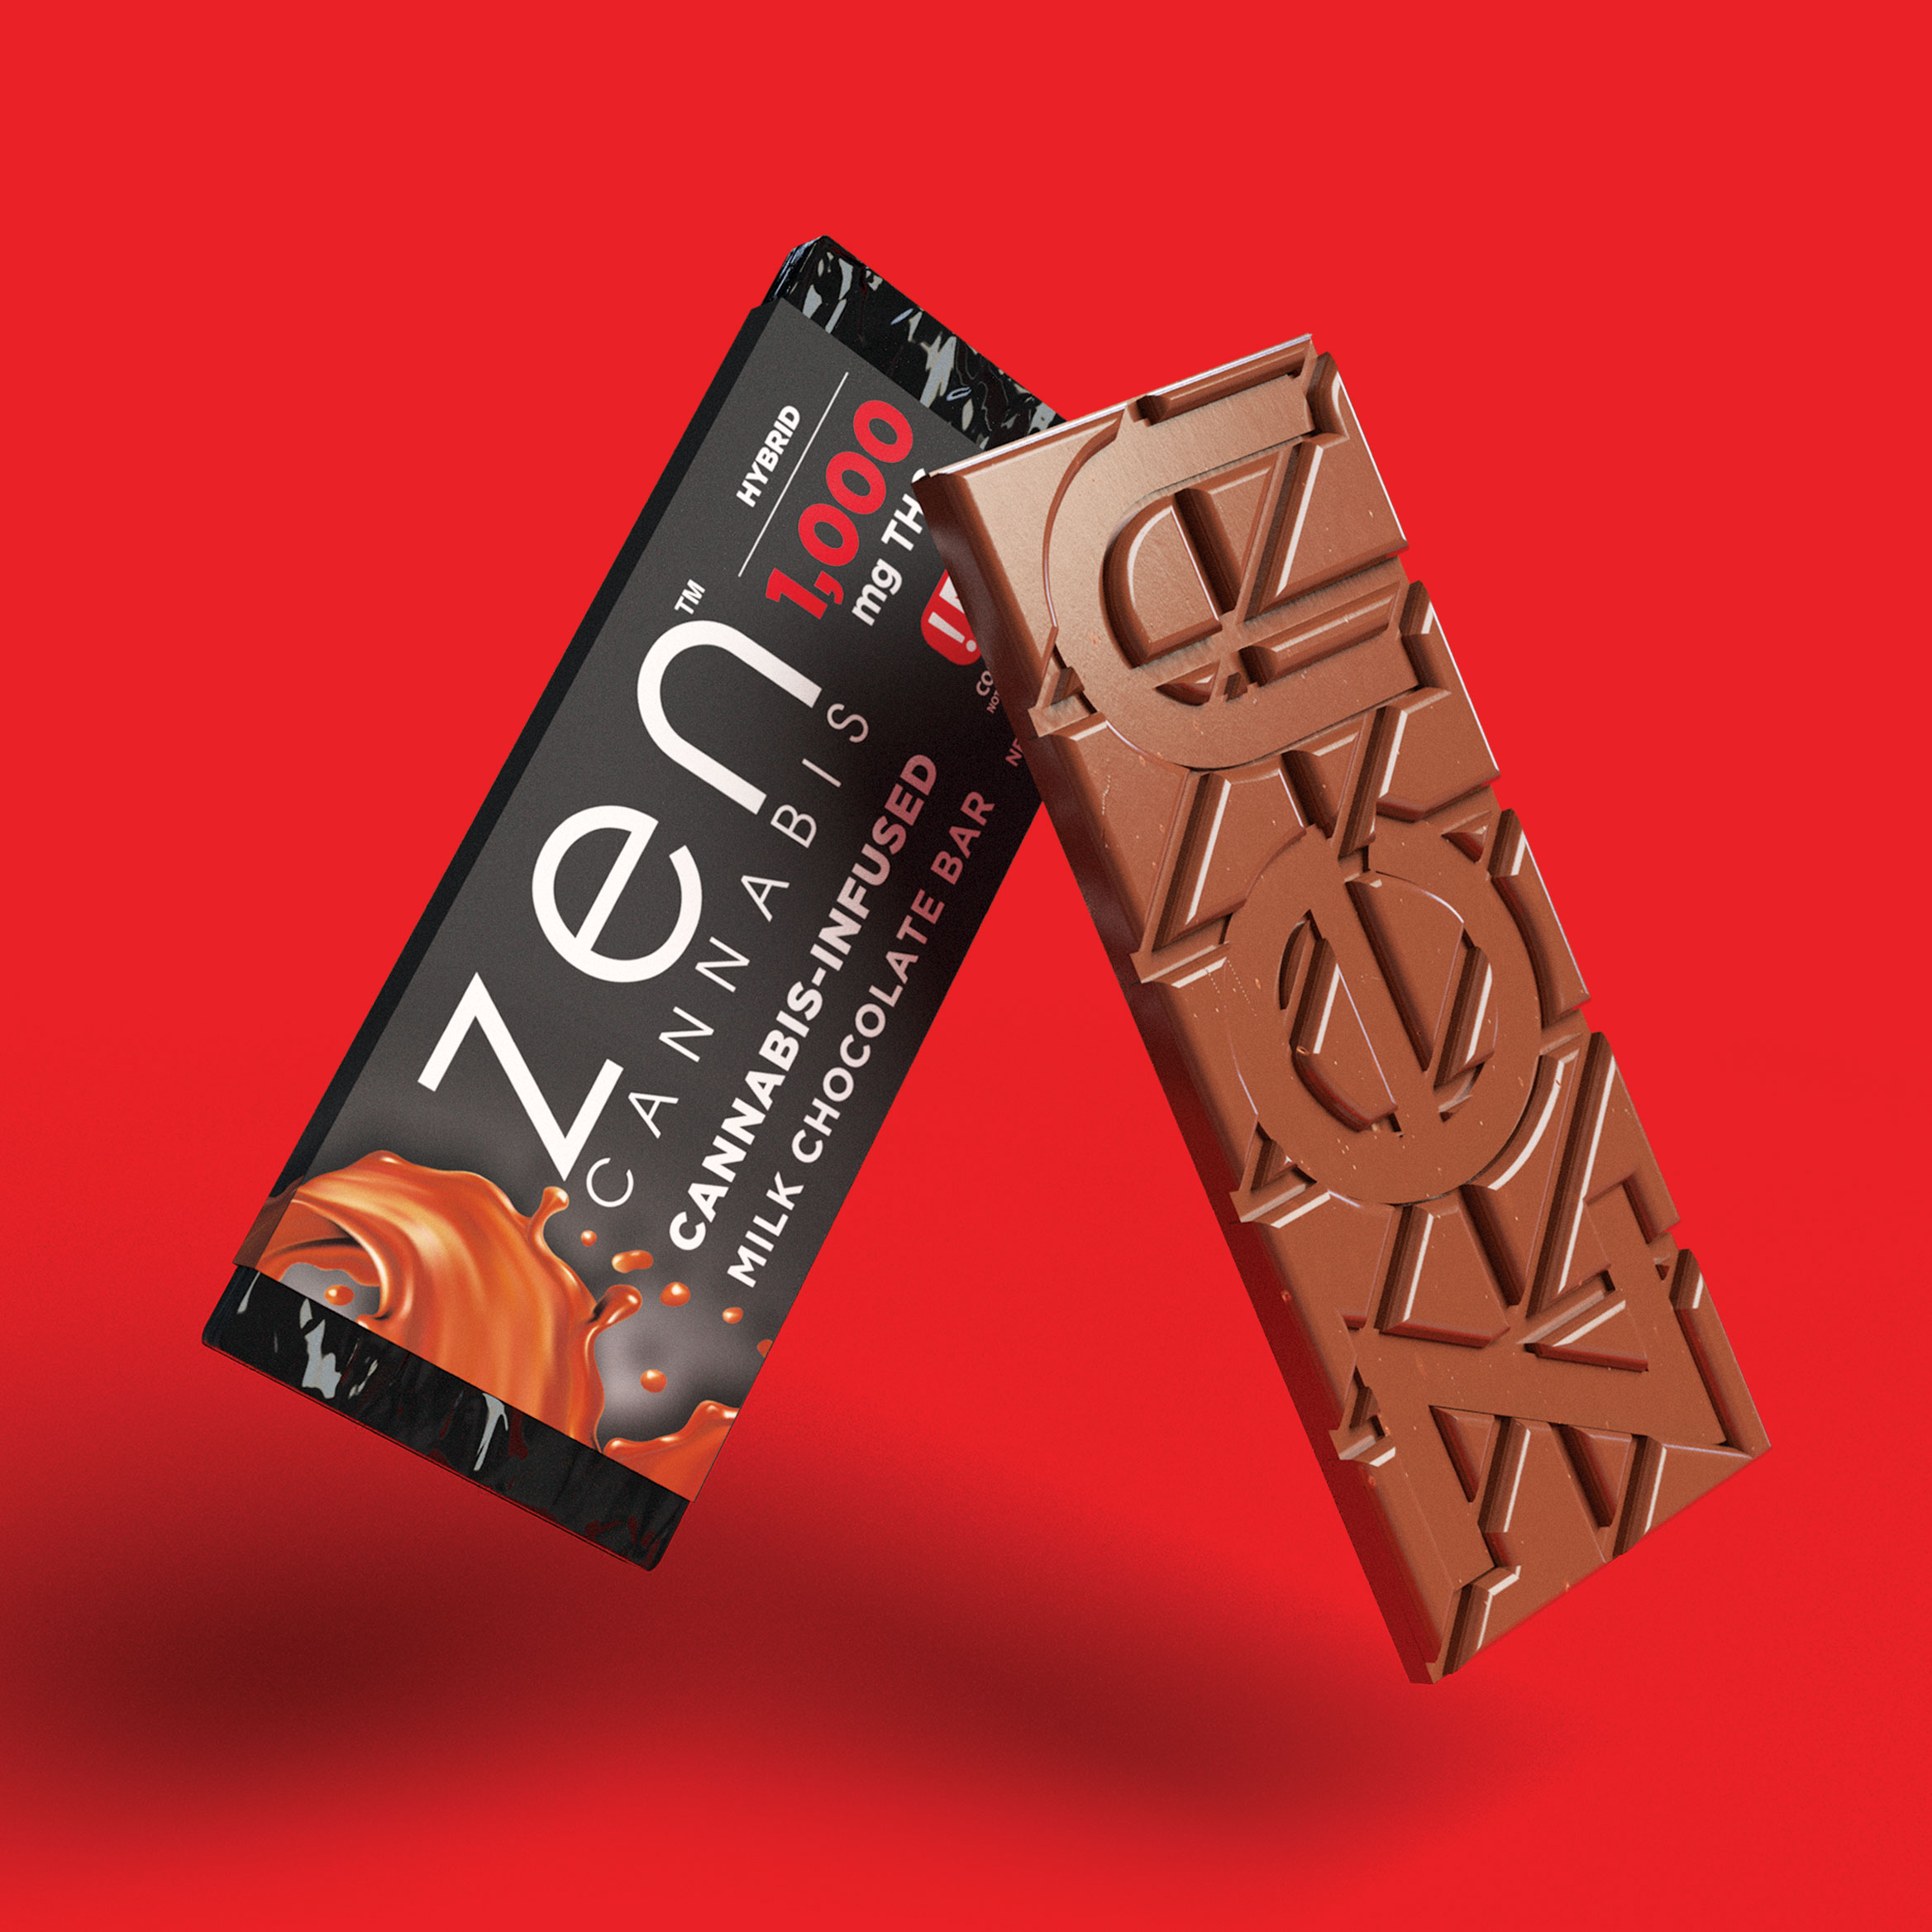 MILK CHOCOLATE - HYBRID A classically sweet and creamy milk chocolate bar that will melt your worries away while it melts in your mouth. 1.55oz (43g)